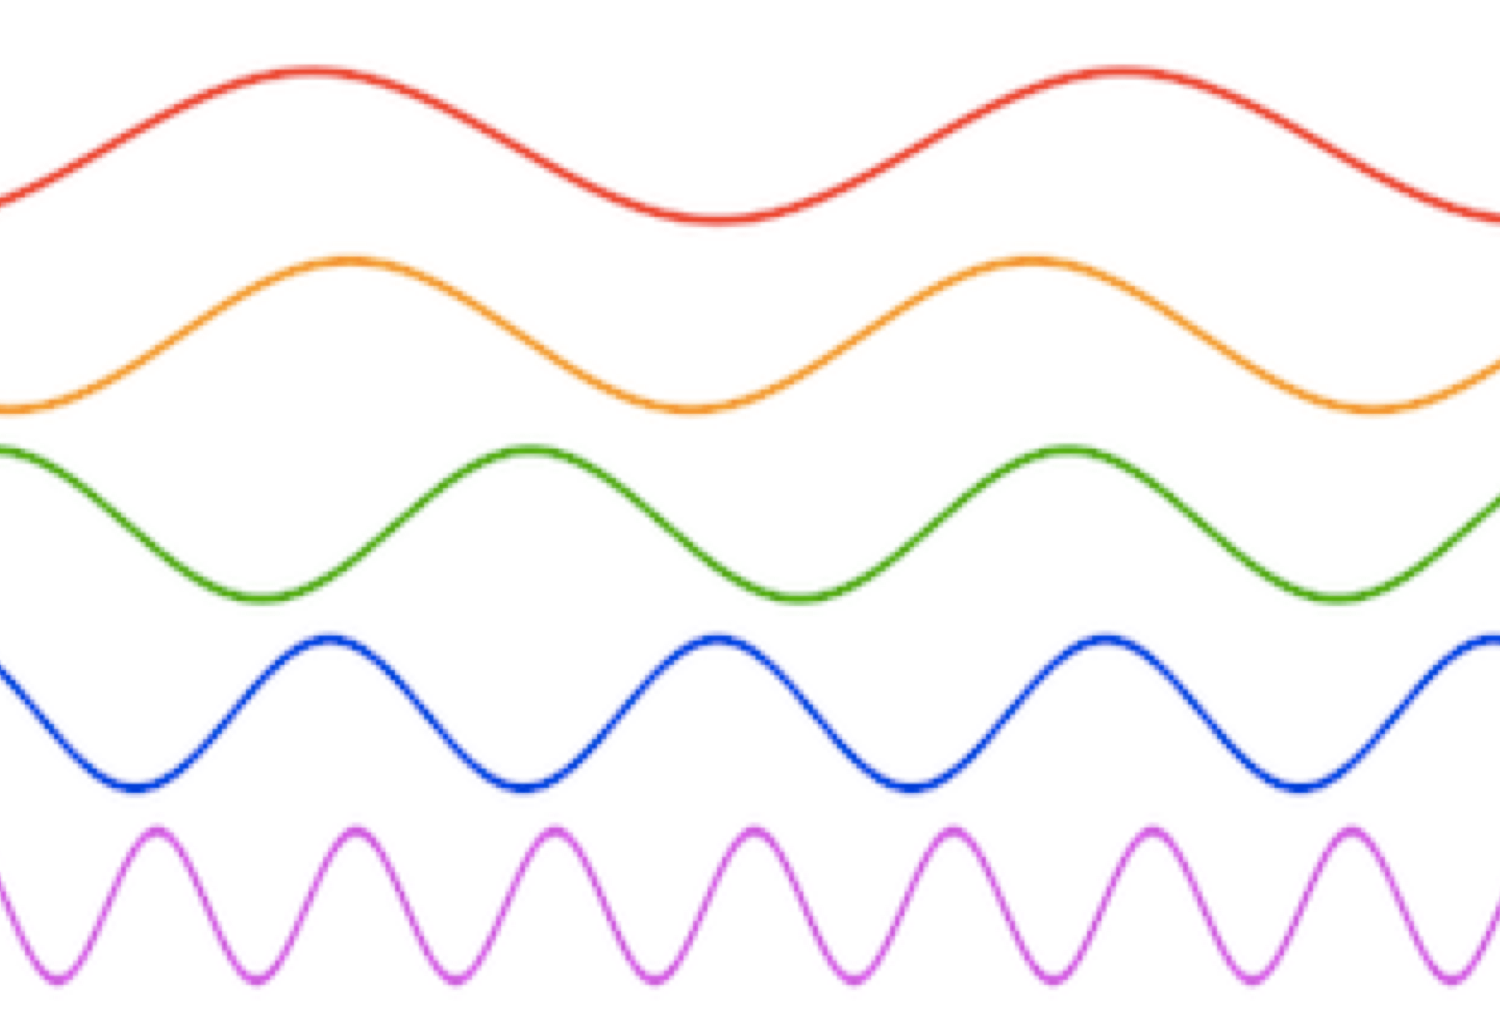 Brain Waves, Sine Waves and the Fourier Transform | Sapien Labs